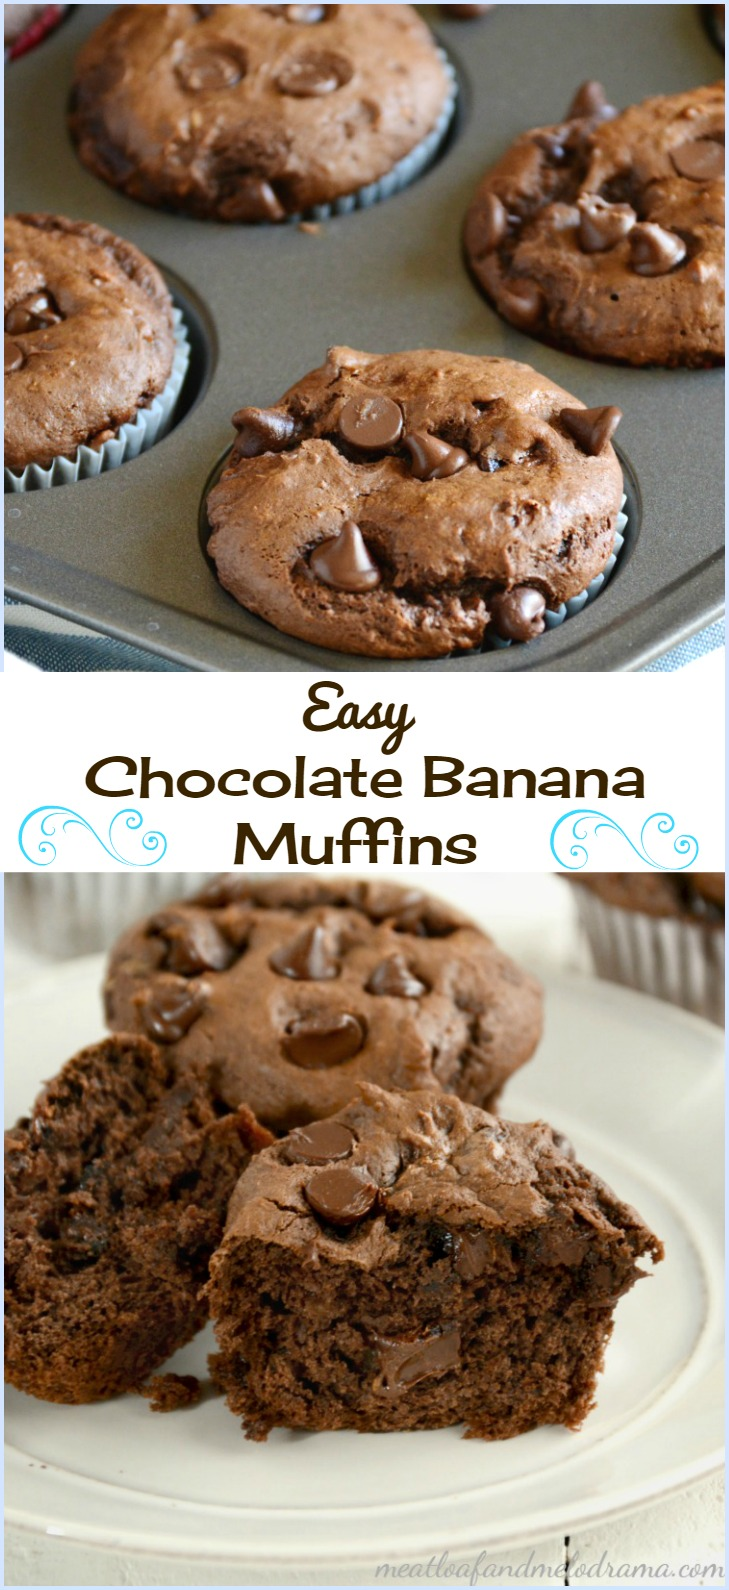 Easy Chocolate Banana Muffins - Meatloaf and Melodrama